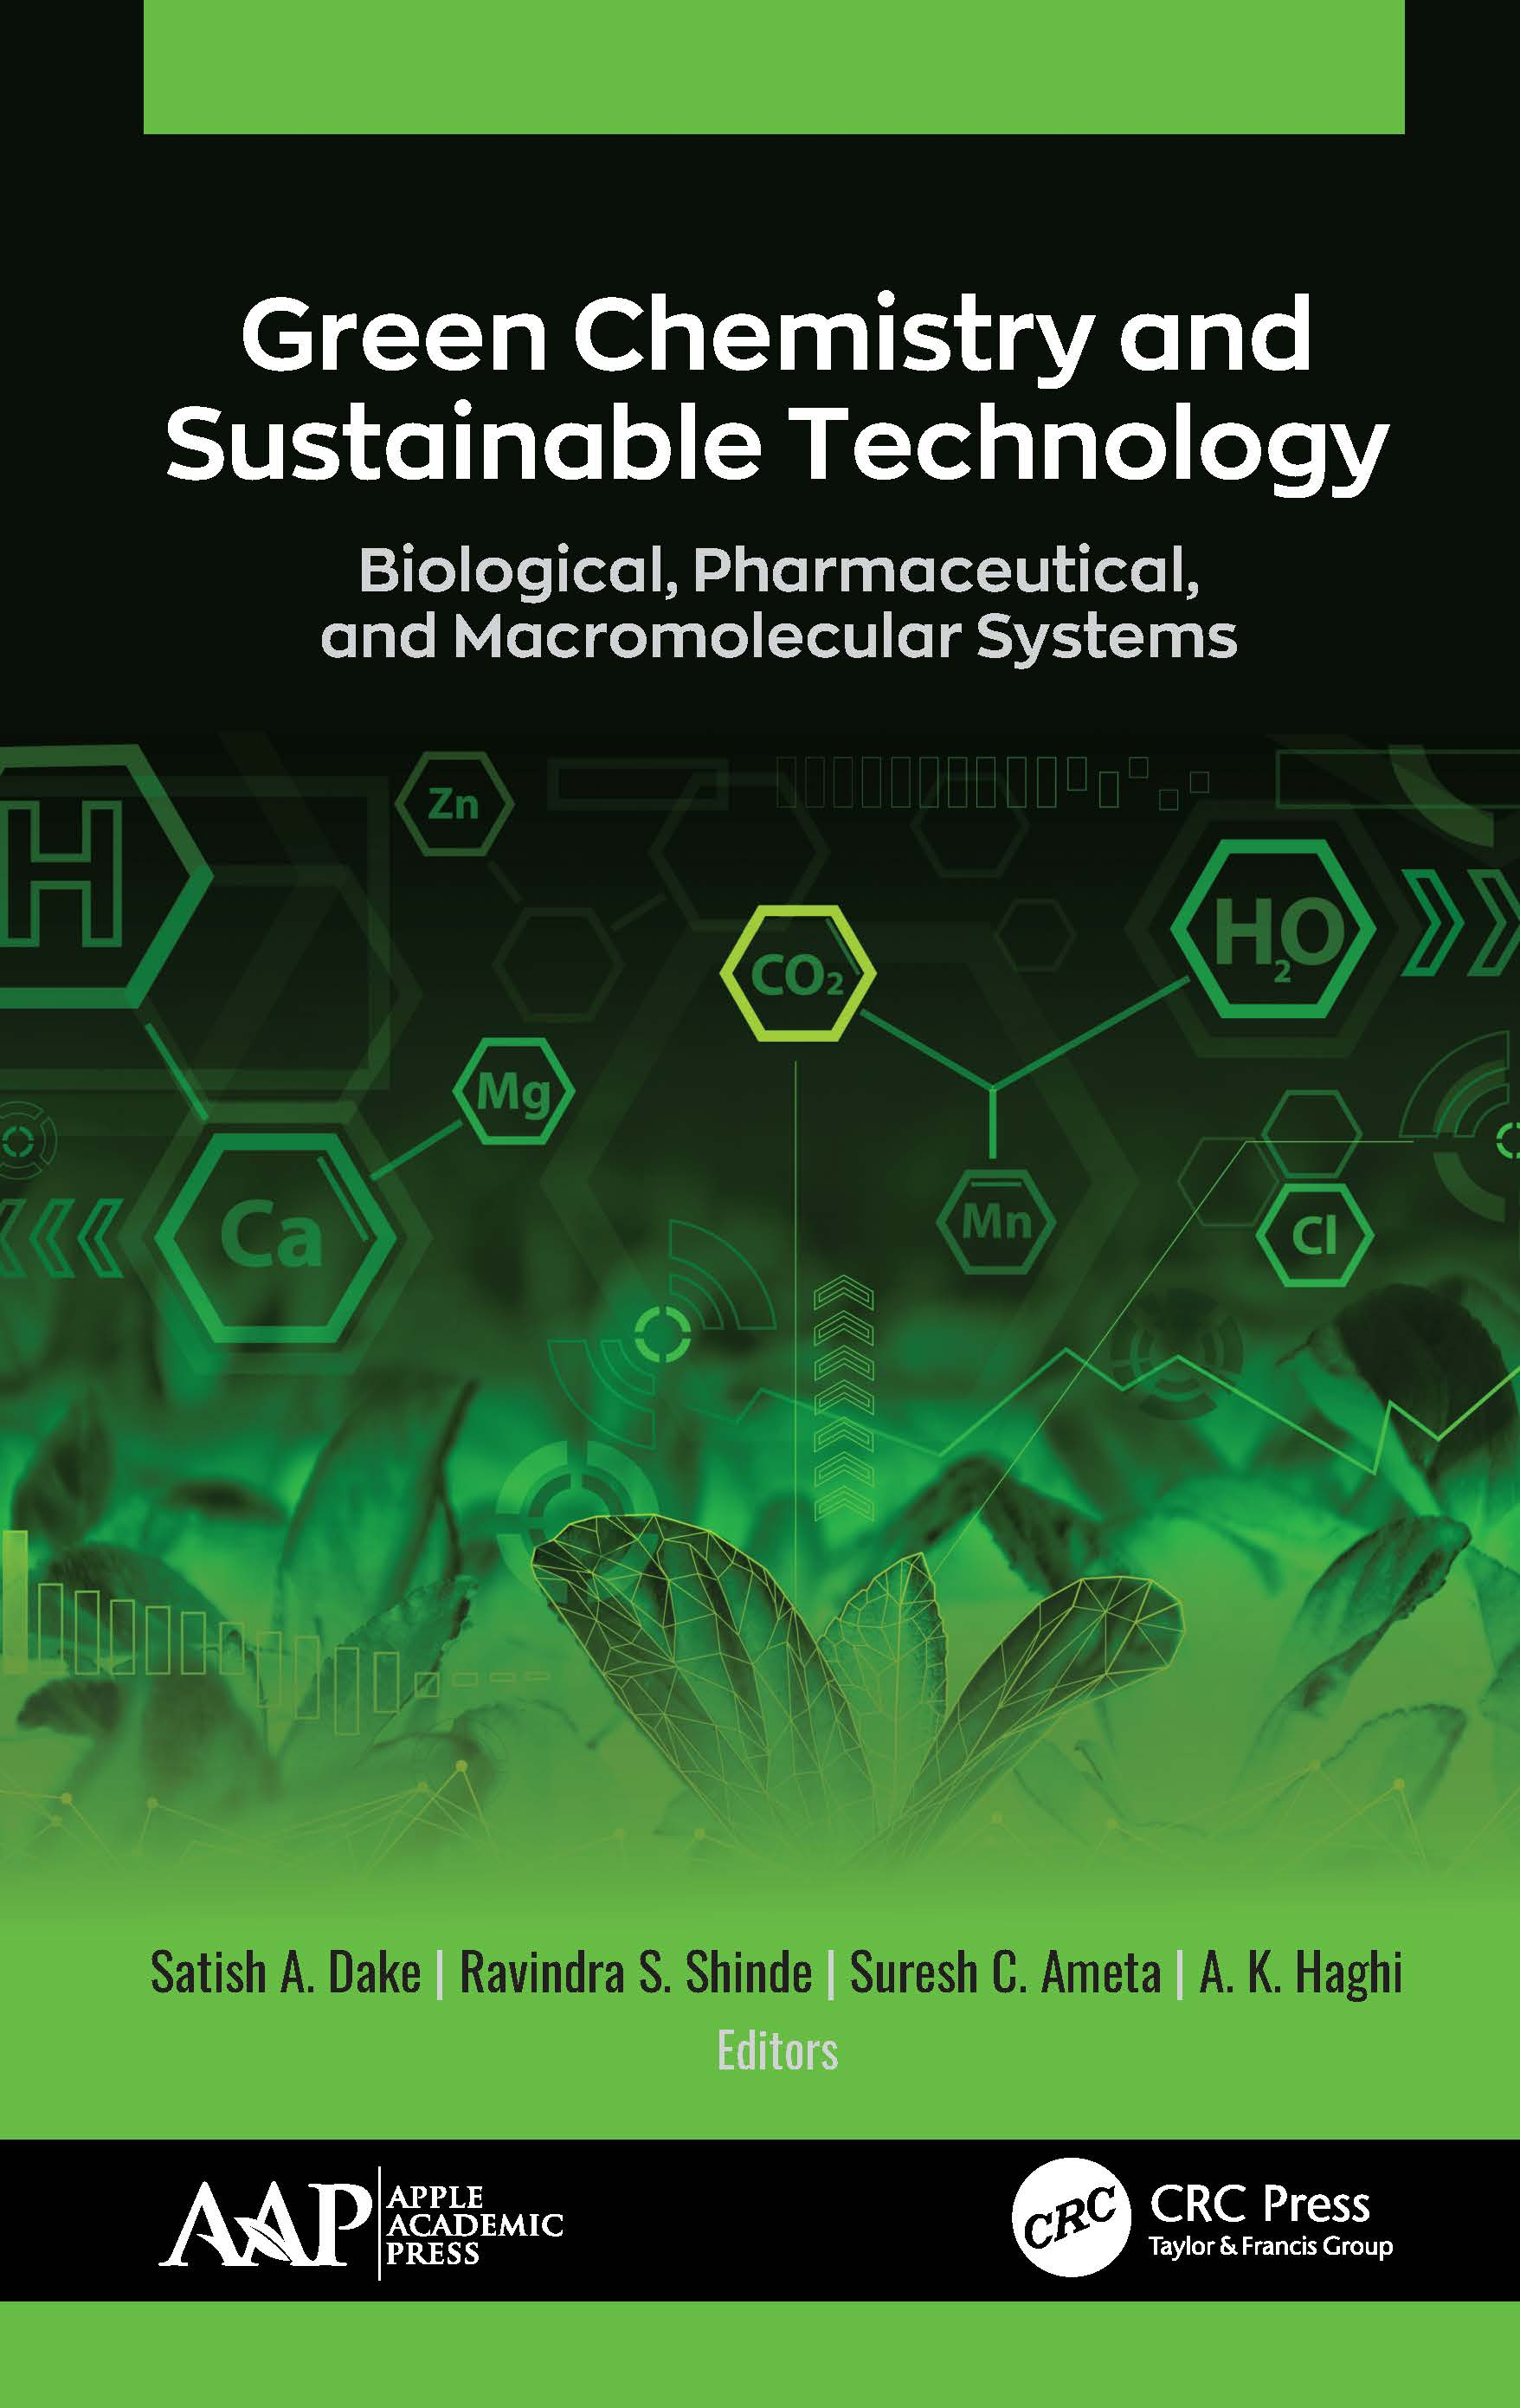 Green Chemistry and Sustainable Technology: Biological, Pharmaceutical, and Macromolecular Systems book cover